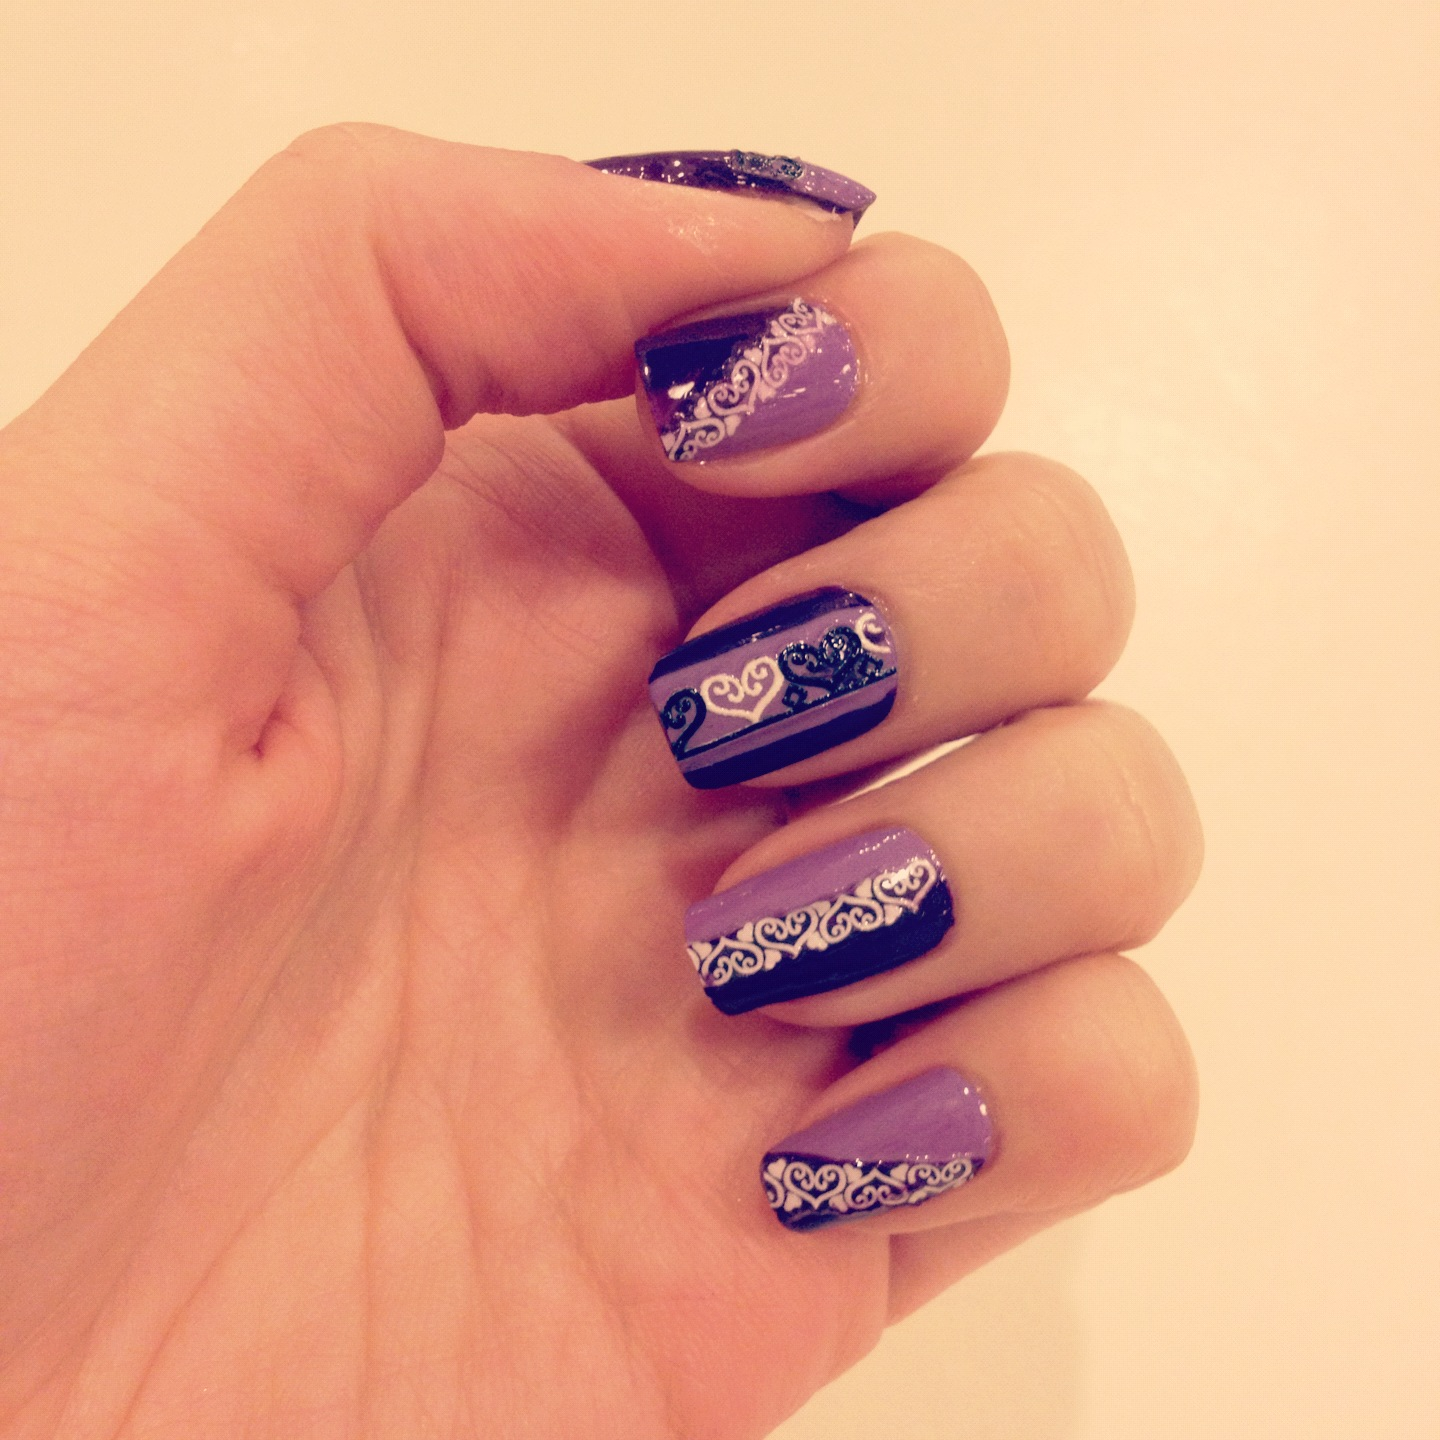 Salon Review: House of J Nails - I Love Bunny